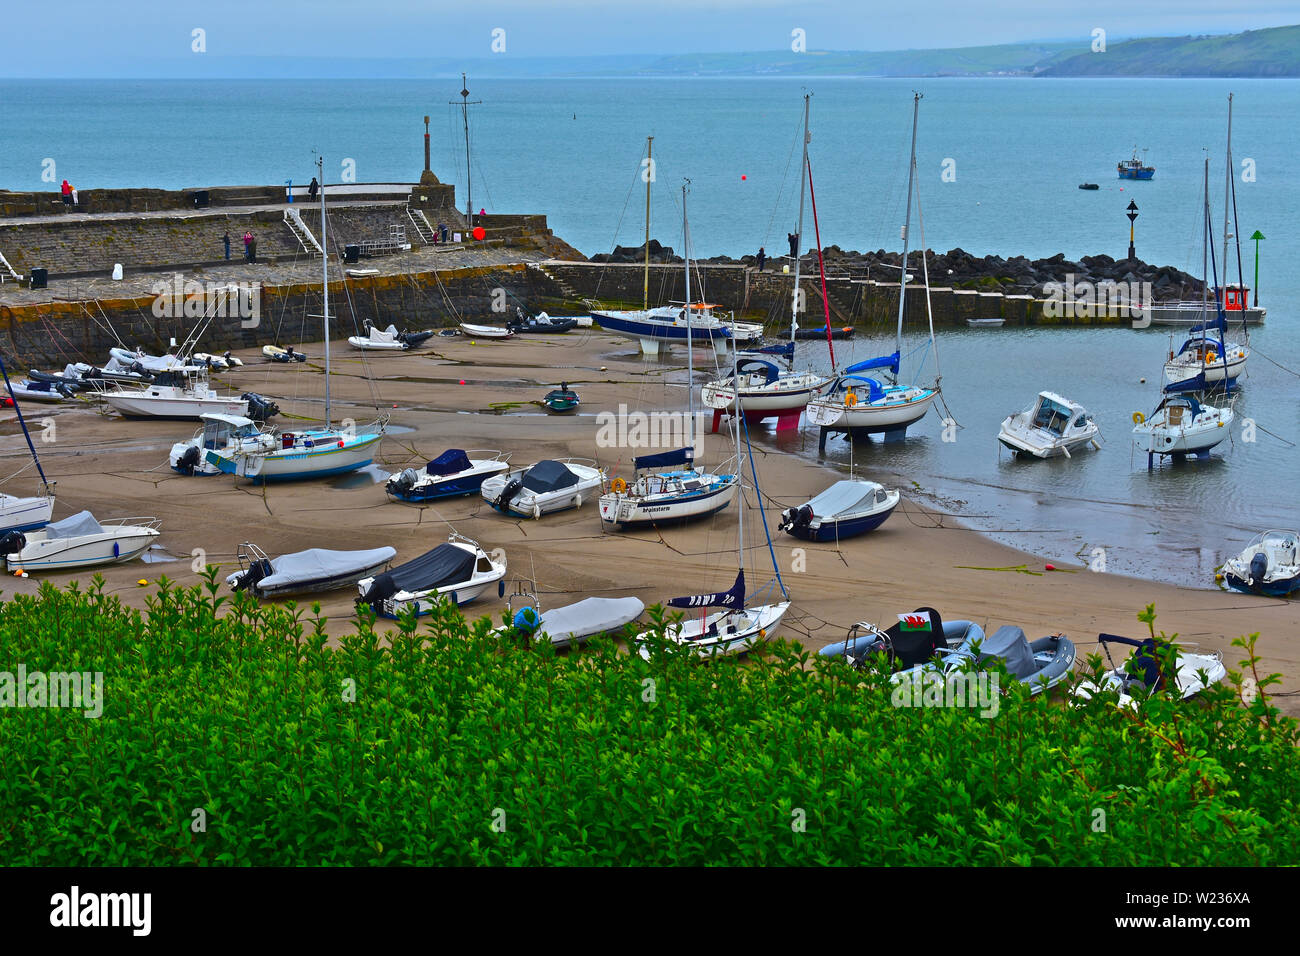 A view of the pretty little harbour at Newquay in West Wales, at low tide. Sandy beach and stone breakwater. Assorted leisure craft & fishing boats. Stock Photo